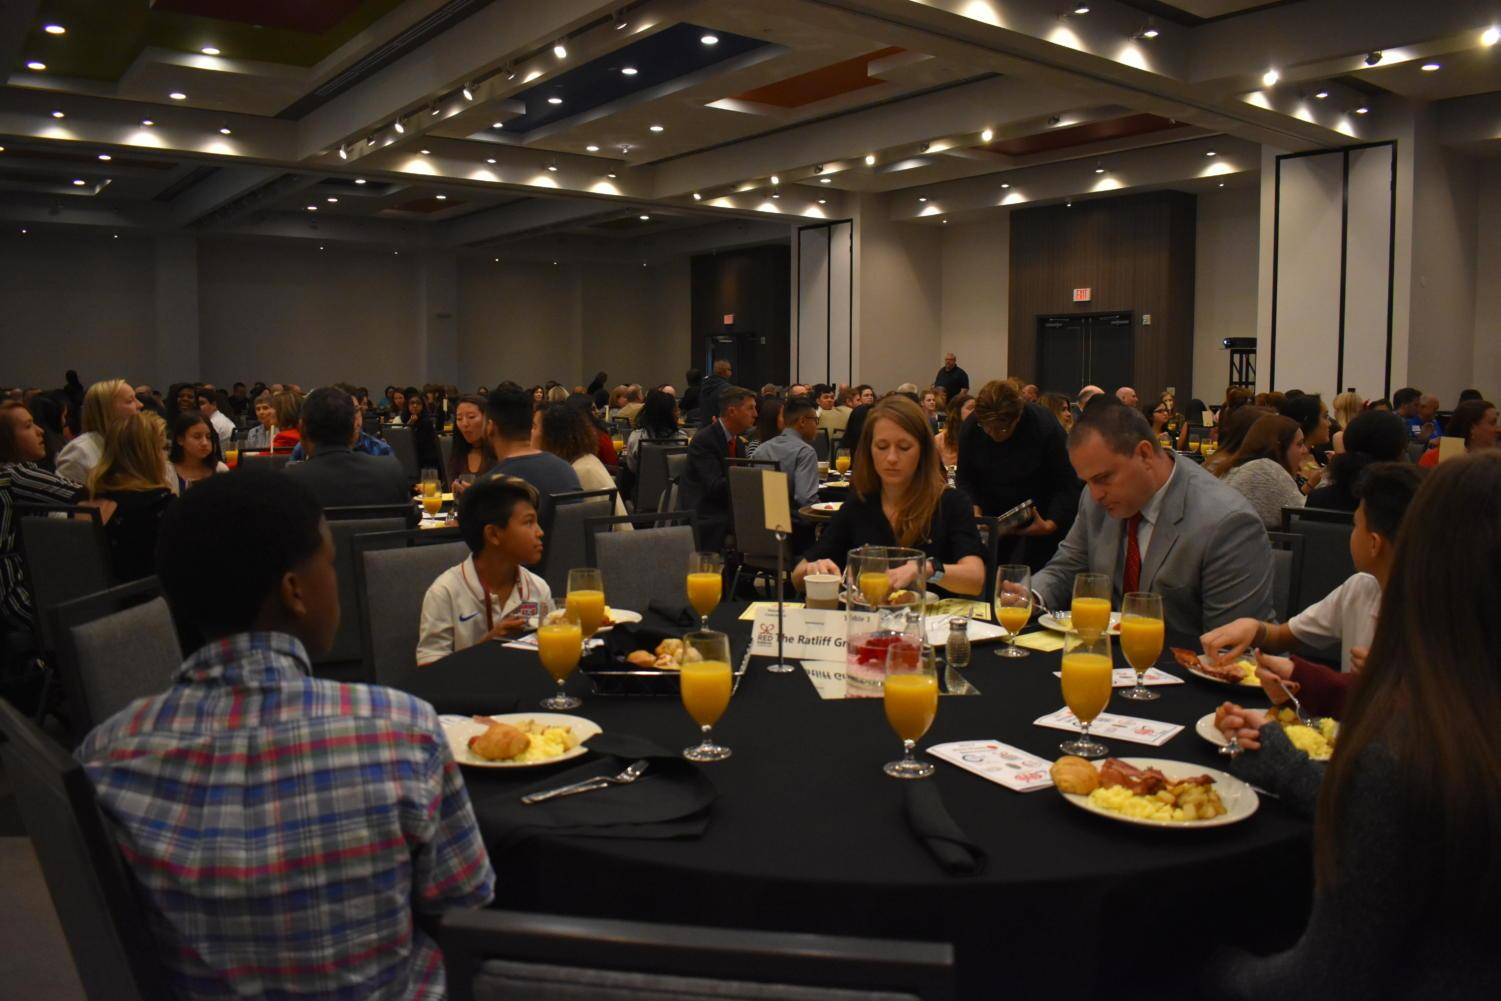 Coppell, Carrollton, Farmers Branch and Addison citizens have breakfast yesterday morning at the Four Points by Sheraton Hotel in Coppelll. The Coppell Chamber of Commerce hosted the 2017 Red Ribbon Breakfast in order to spread awareness against the use of drugs.